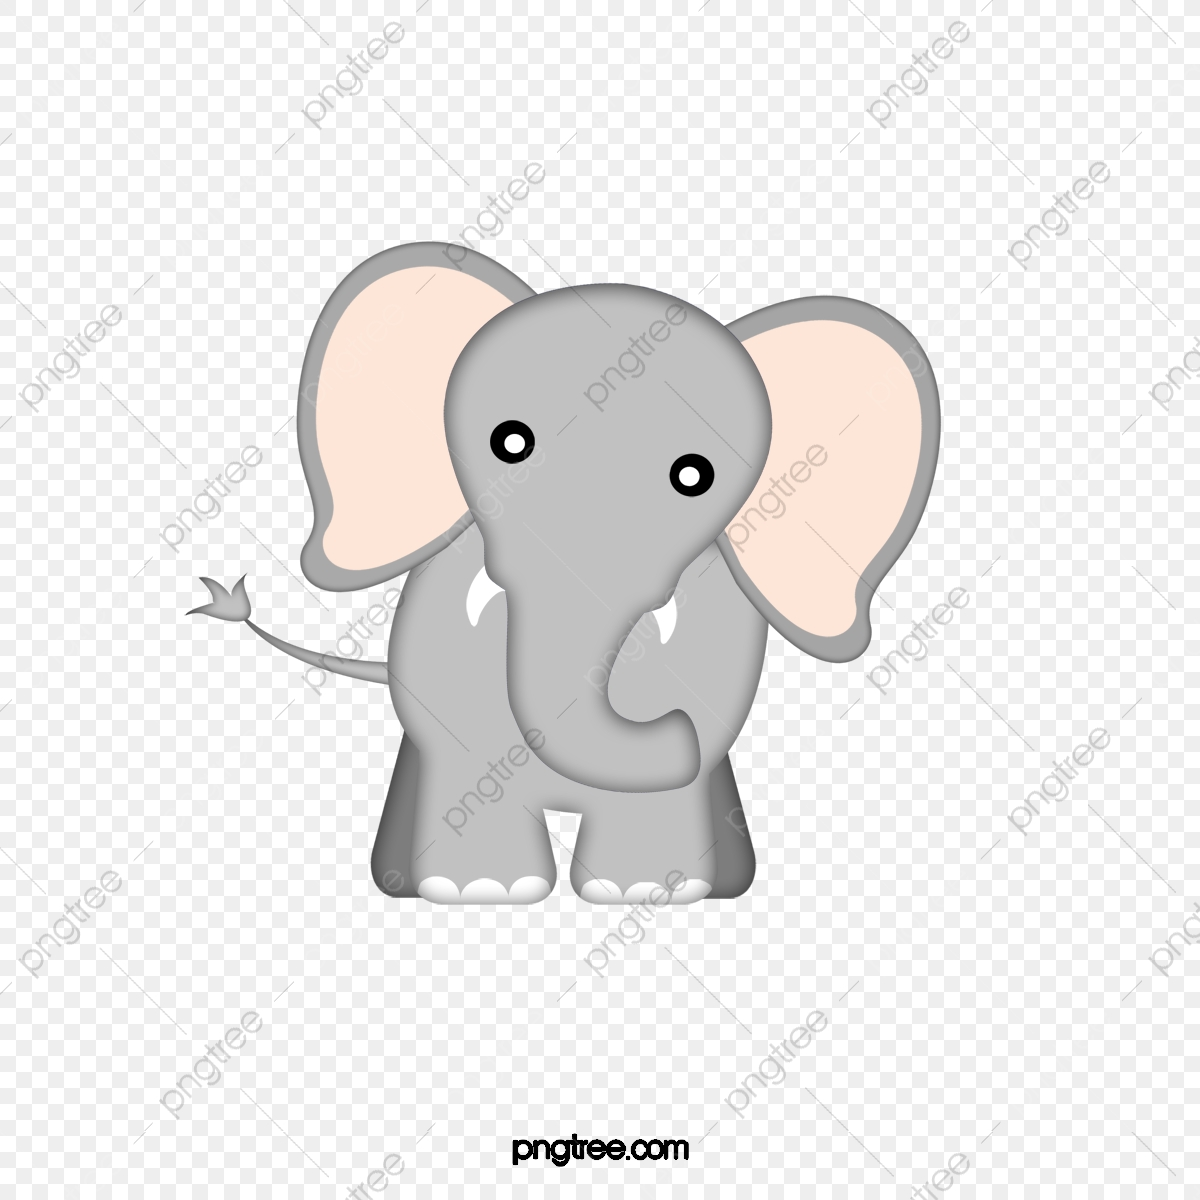 Cute Elephant Elephant Clipart Cute Clipart Meng Stay Elephant Png Transparent Clipart Image And Psd File For Free Download Please, do not forget to link to elephant png, elephant animal african photos page for attribution! https pngtree com freepng cute elephant 2667625 html